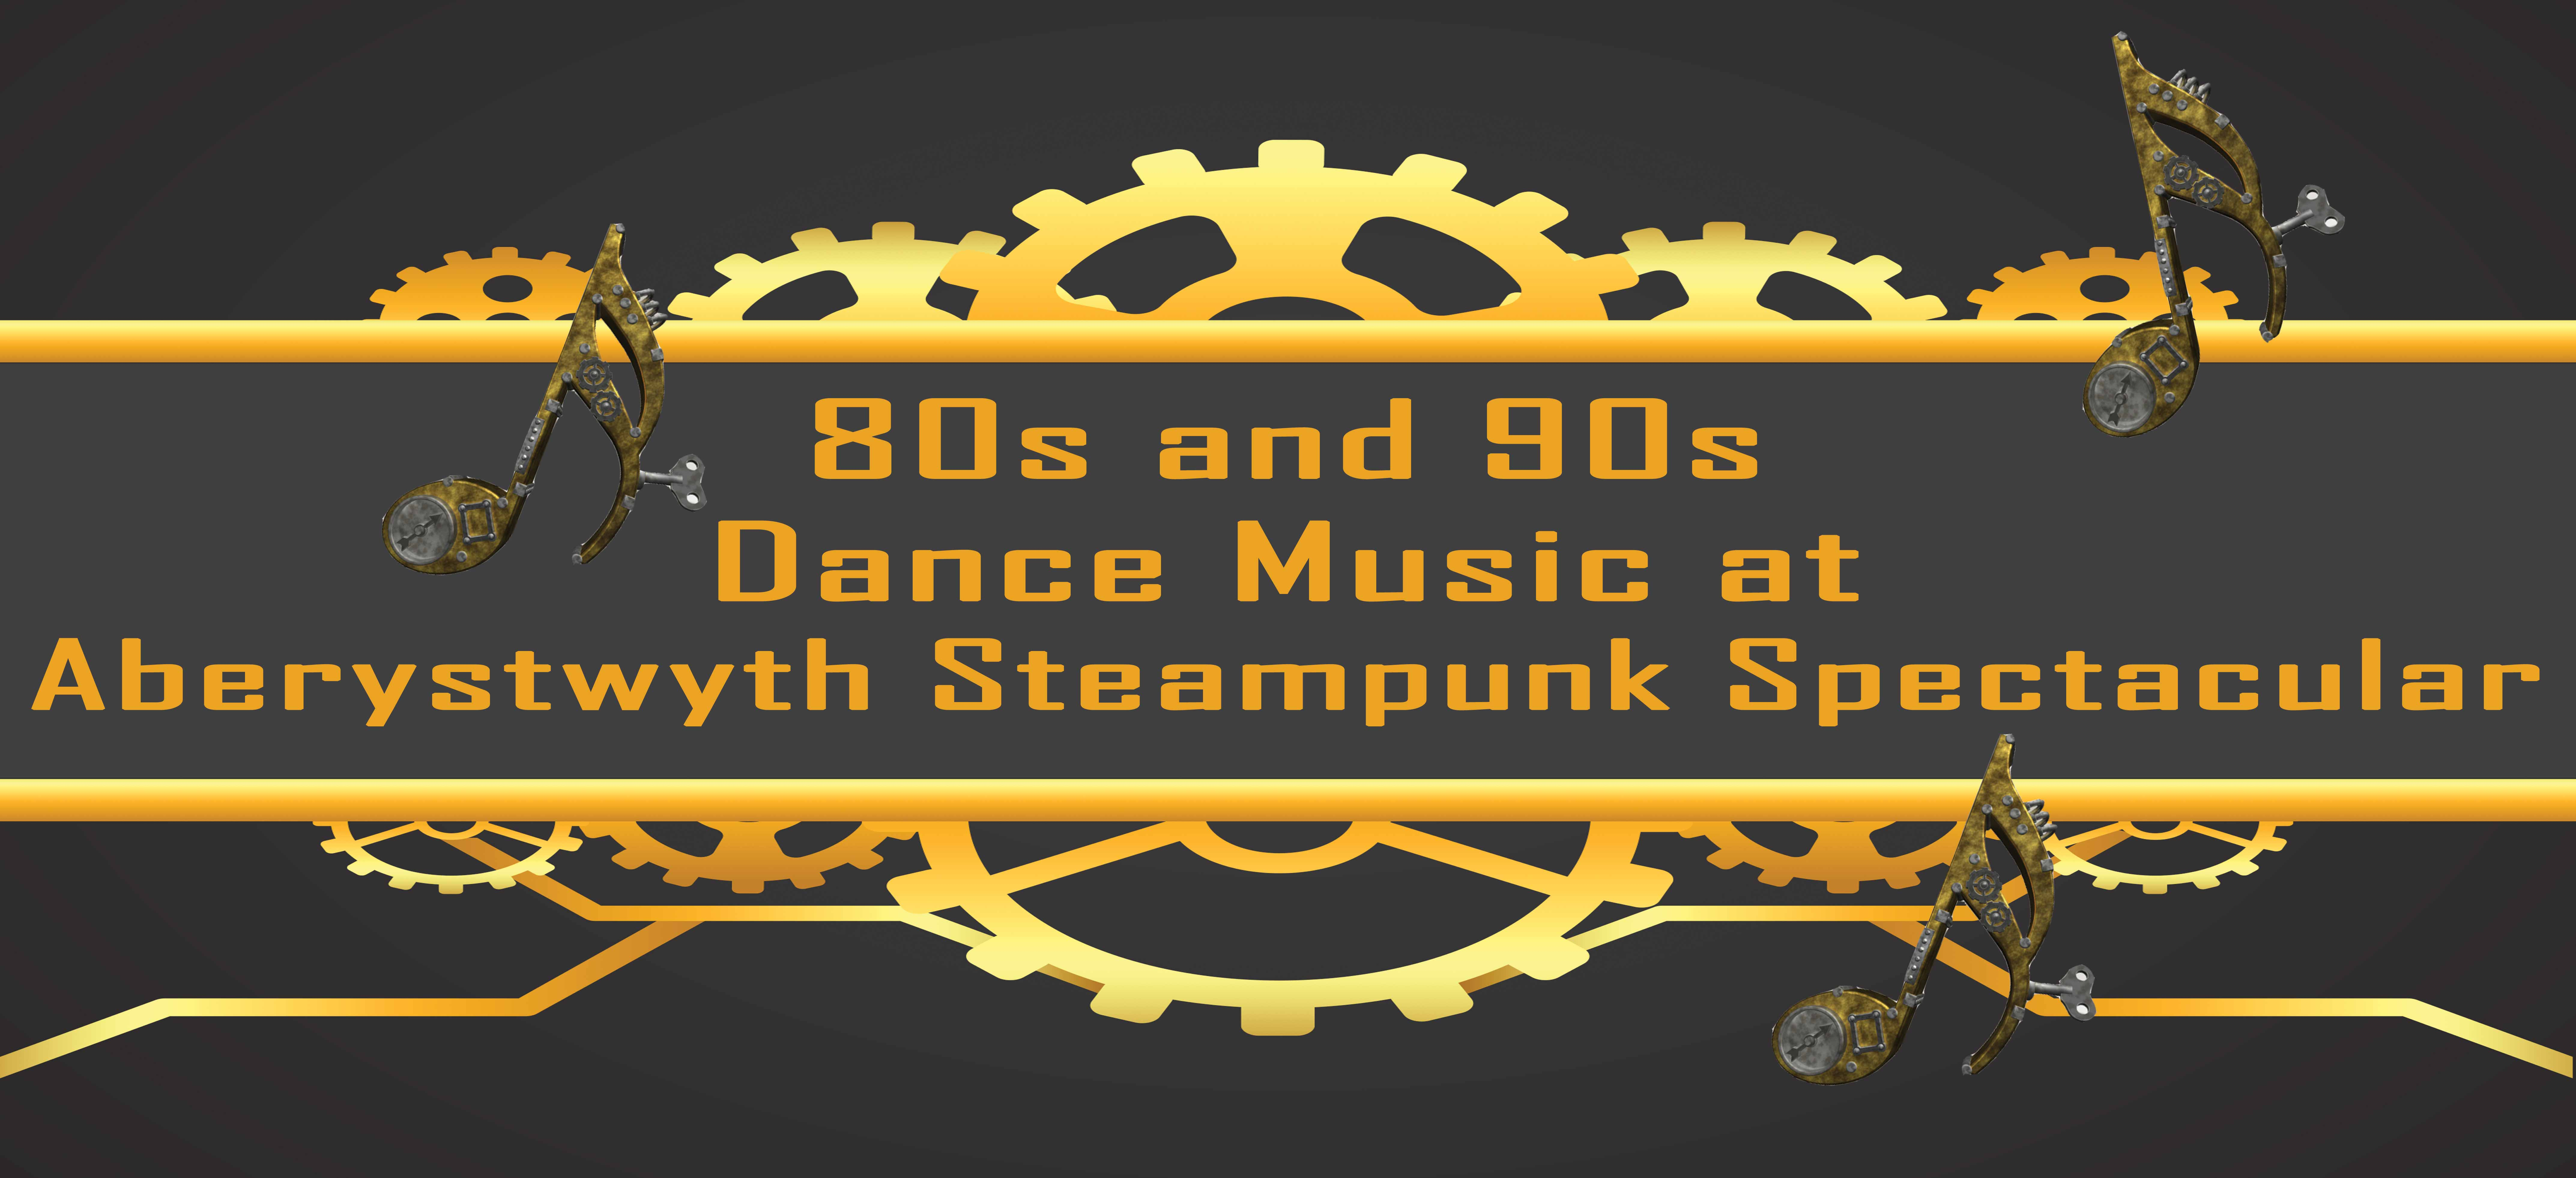 80s and 90s dance music